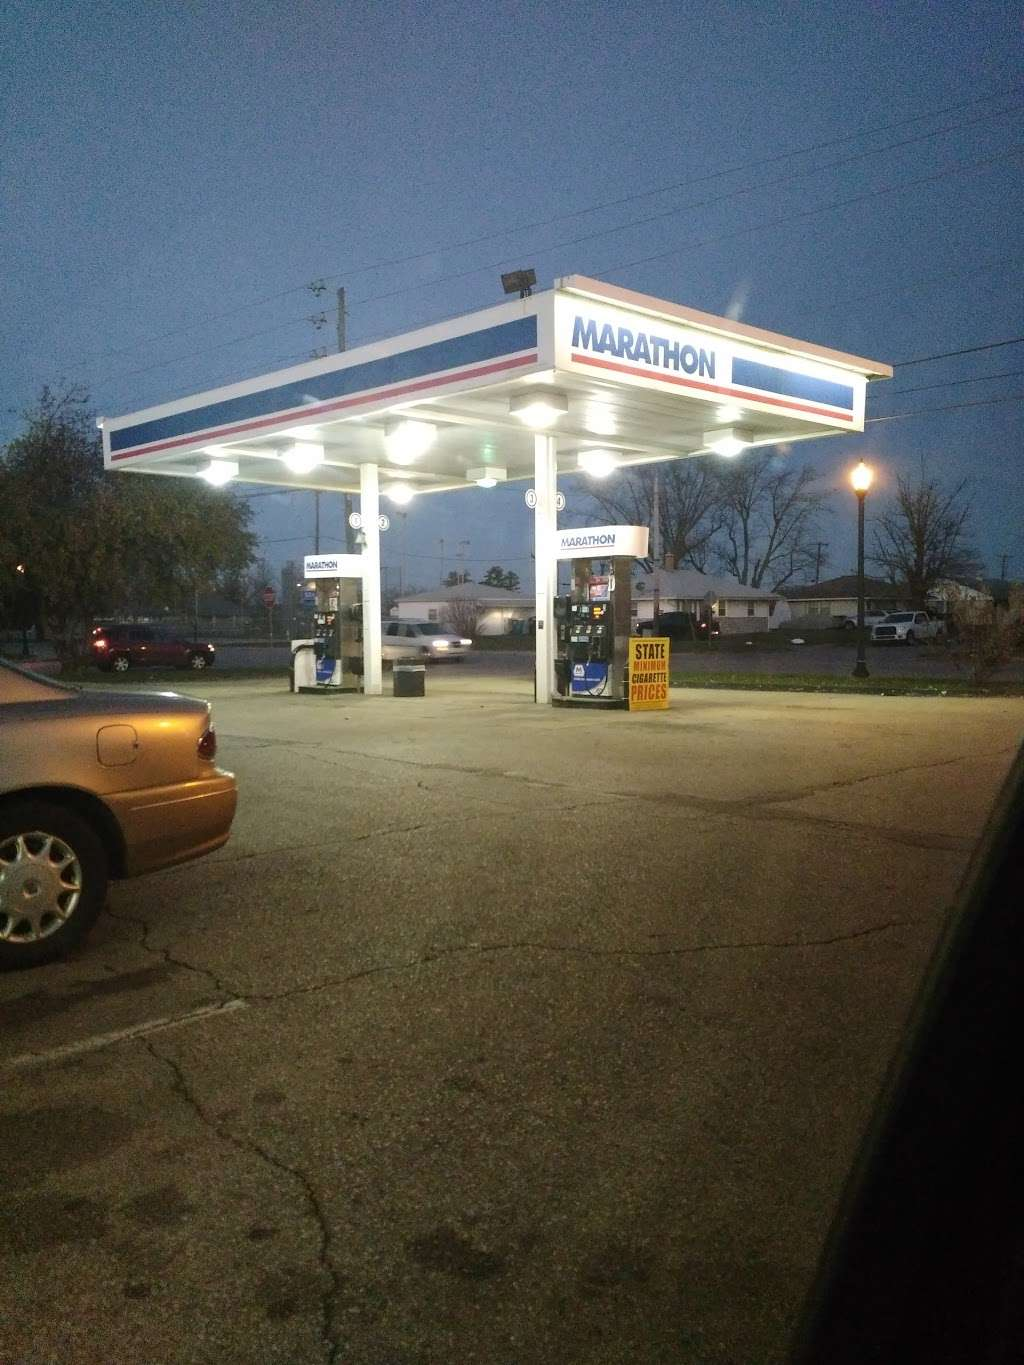 Marathon Gas - gas station    Photo 1 of 1   Address: 5190 N Franklin Rd, Indianapolis, IN 46226, USA   Phone: (317) 542-7126